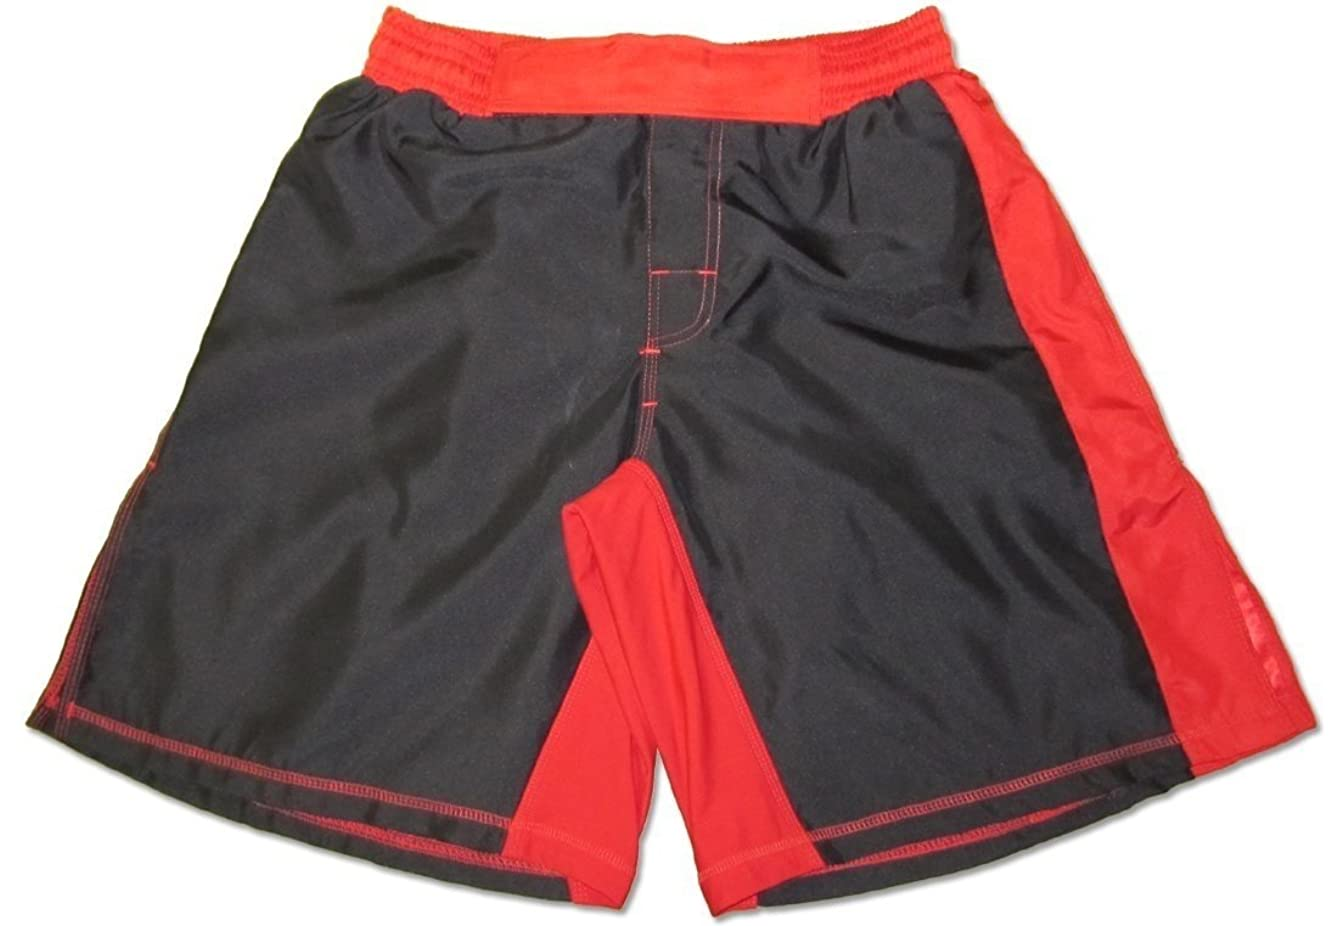 Ring to Cage Premium MMA Training Shorts for MMA Grappling, Kids and Adult Sizes